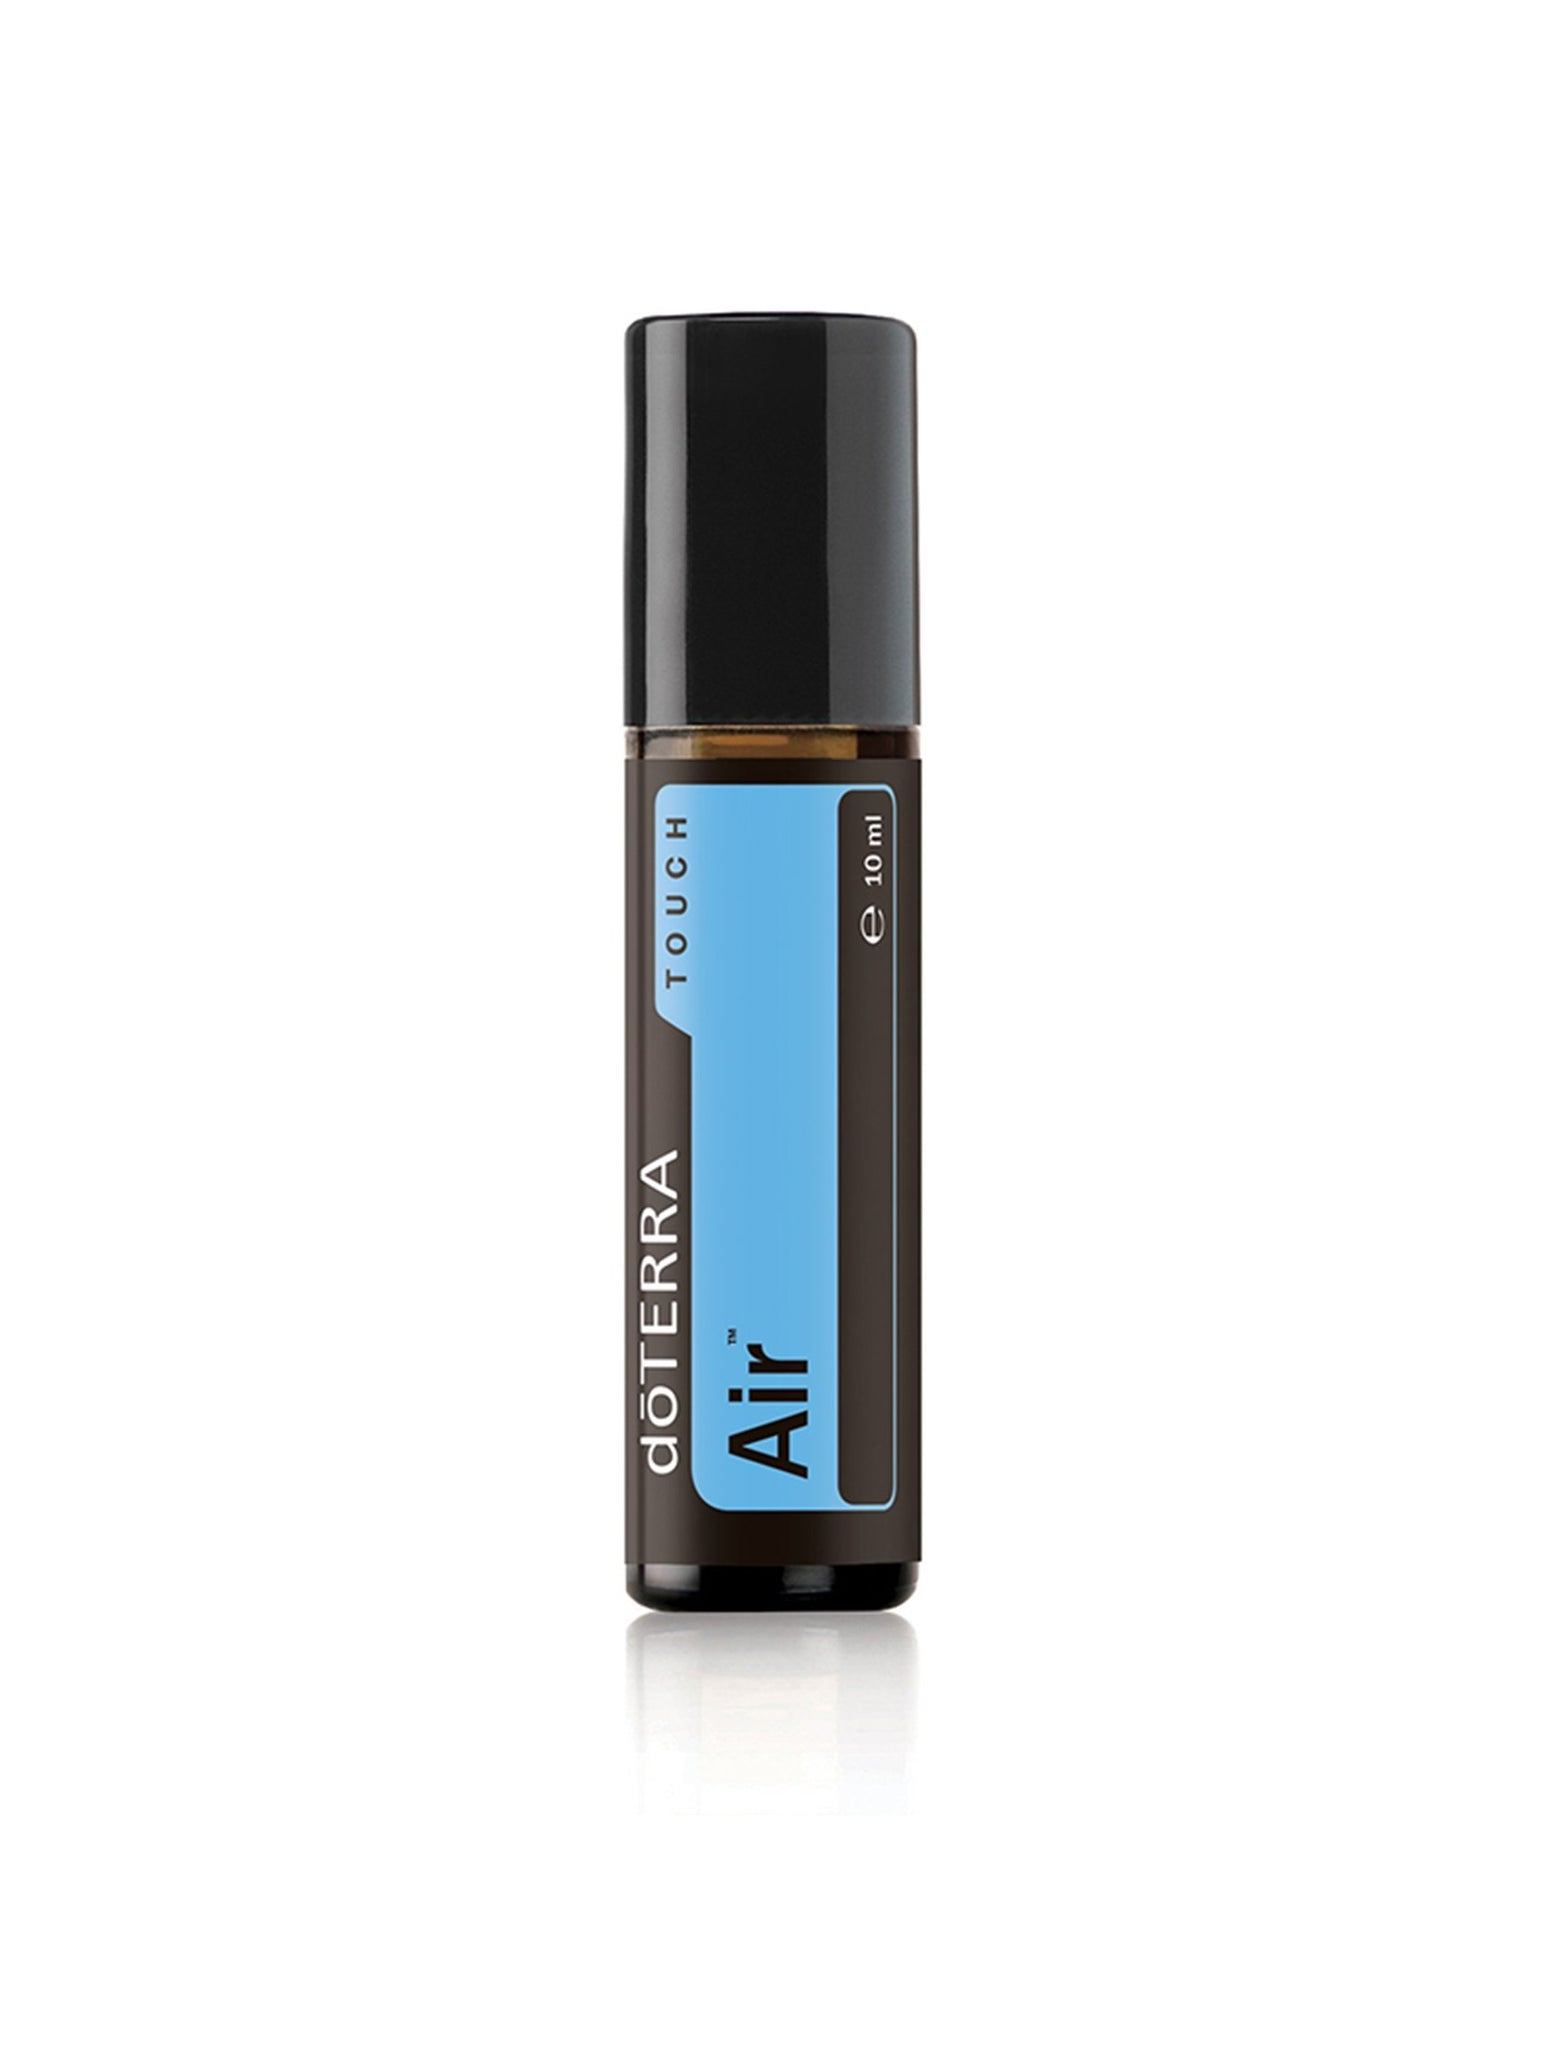 Compre Breathe (Air) Roll-on | 10ml online na EVOdaTERRA